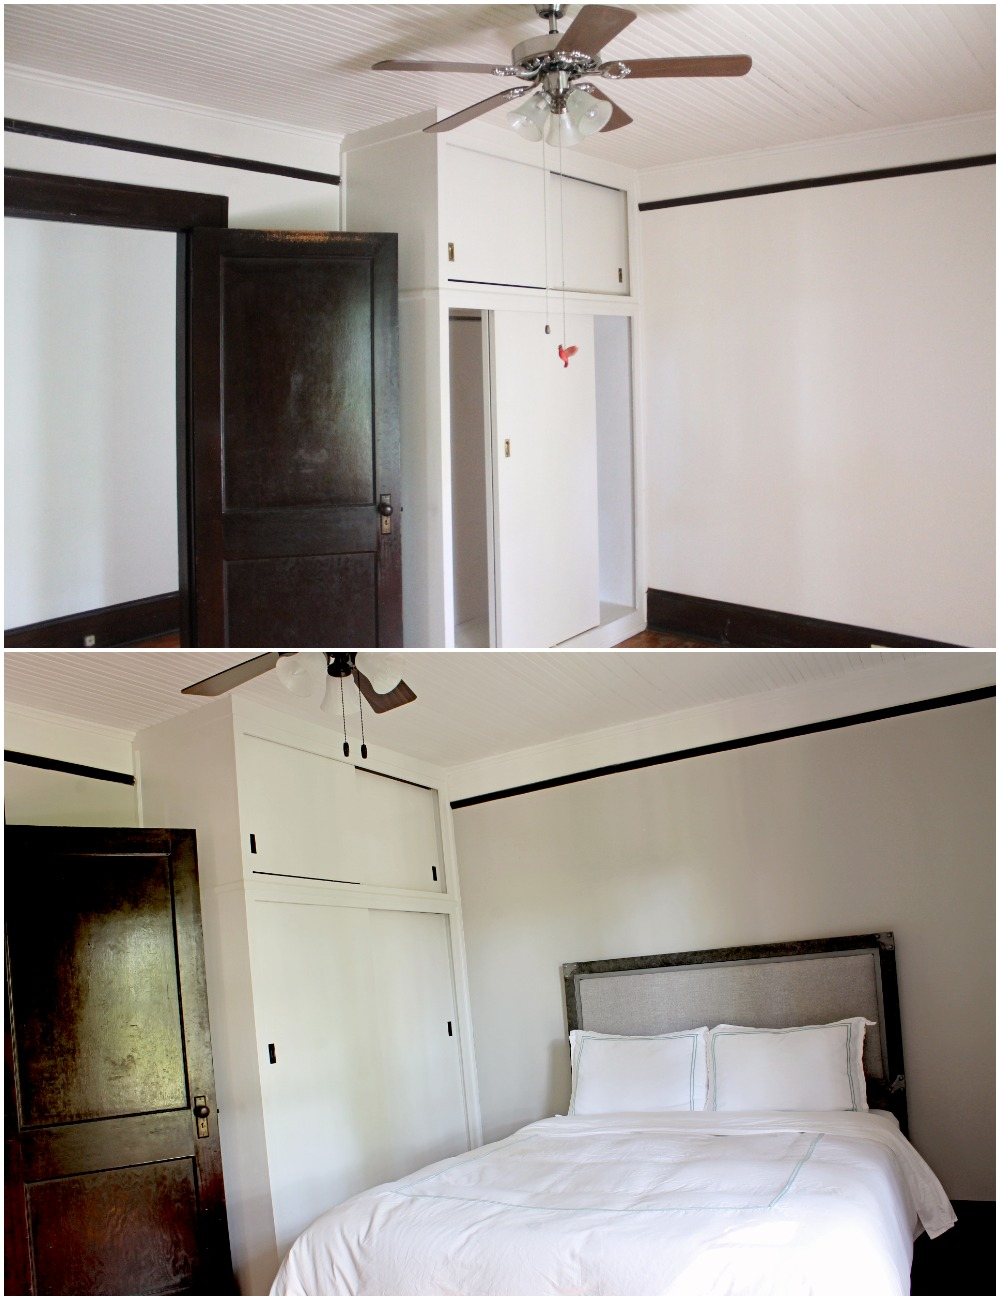 House Flipping Before and Afters - Bedroom Staging Ideas, Wood Trim Paint Colors - Sherwin Williams Repose Gray 12